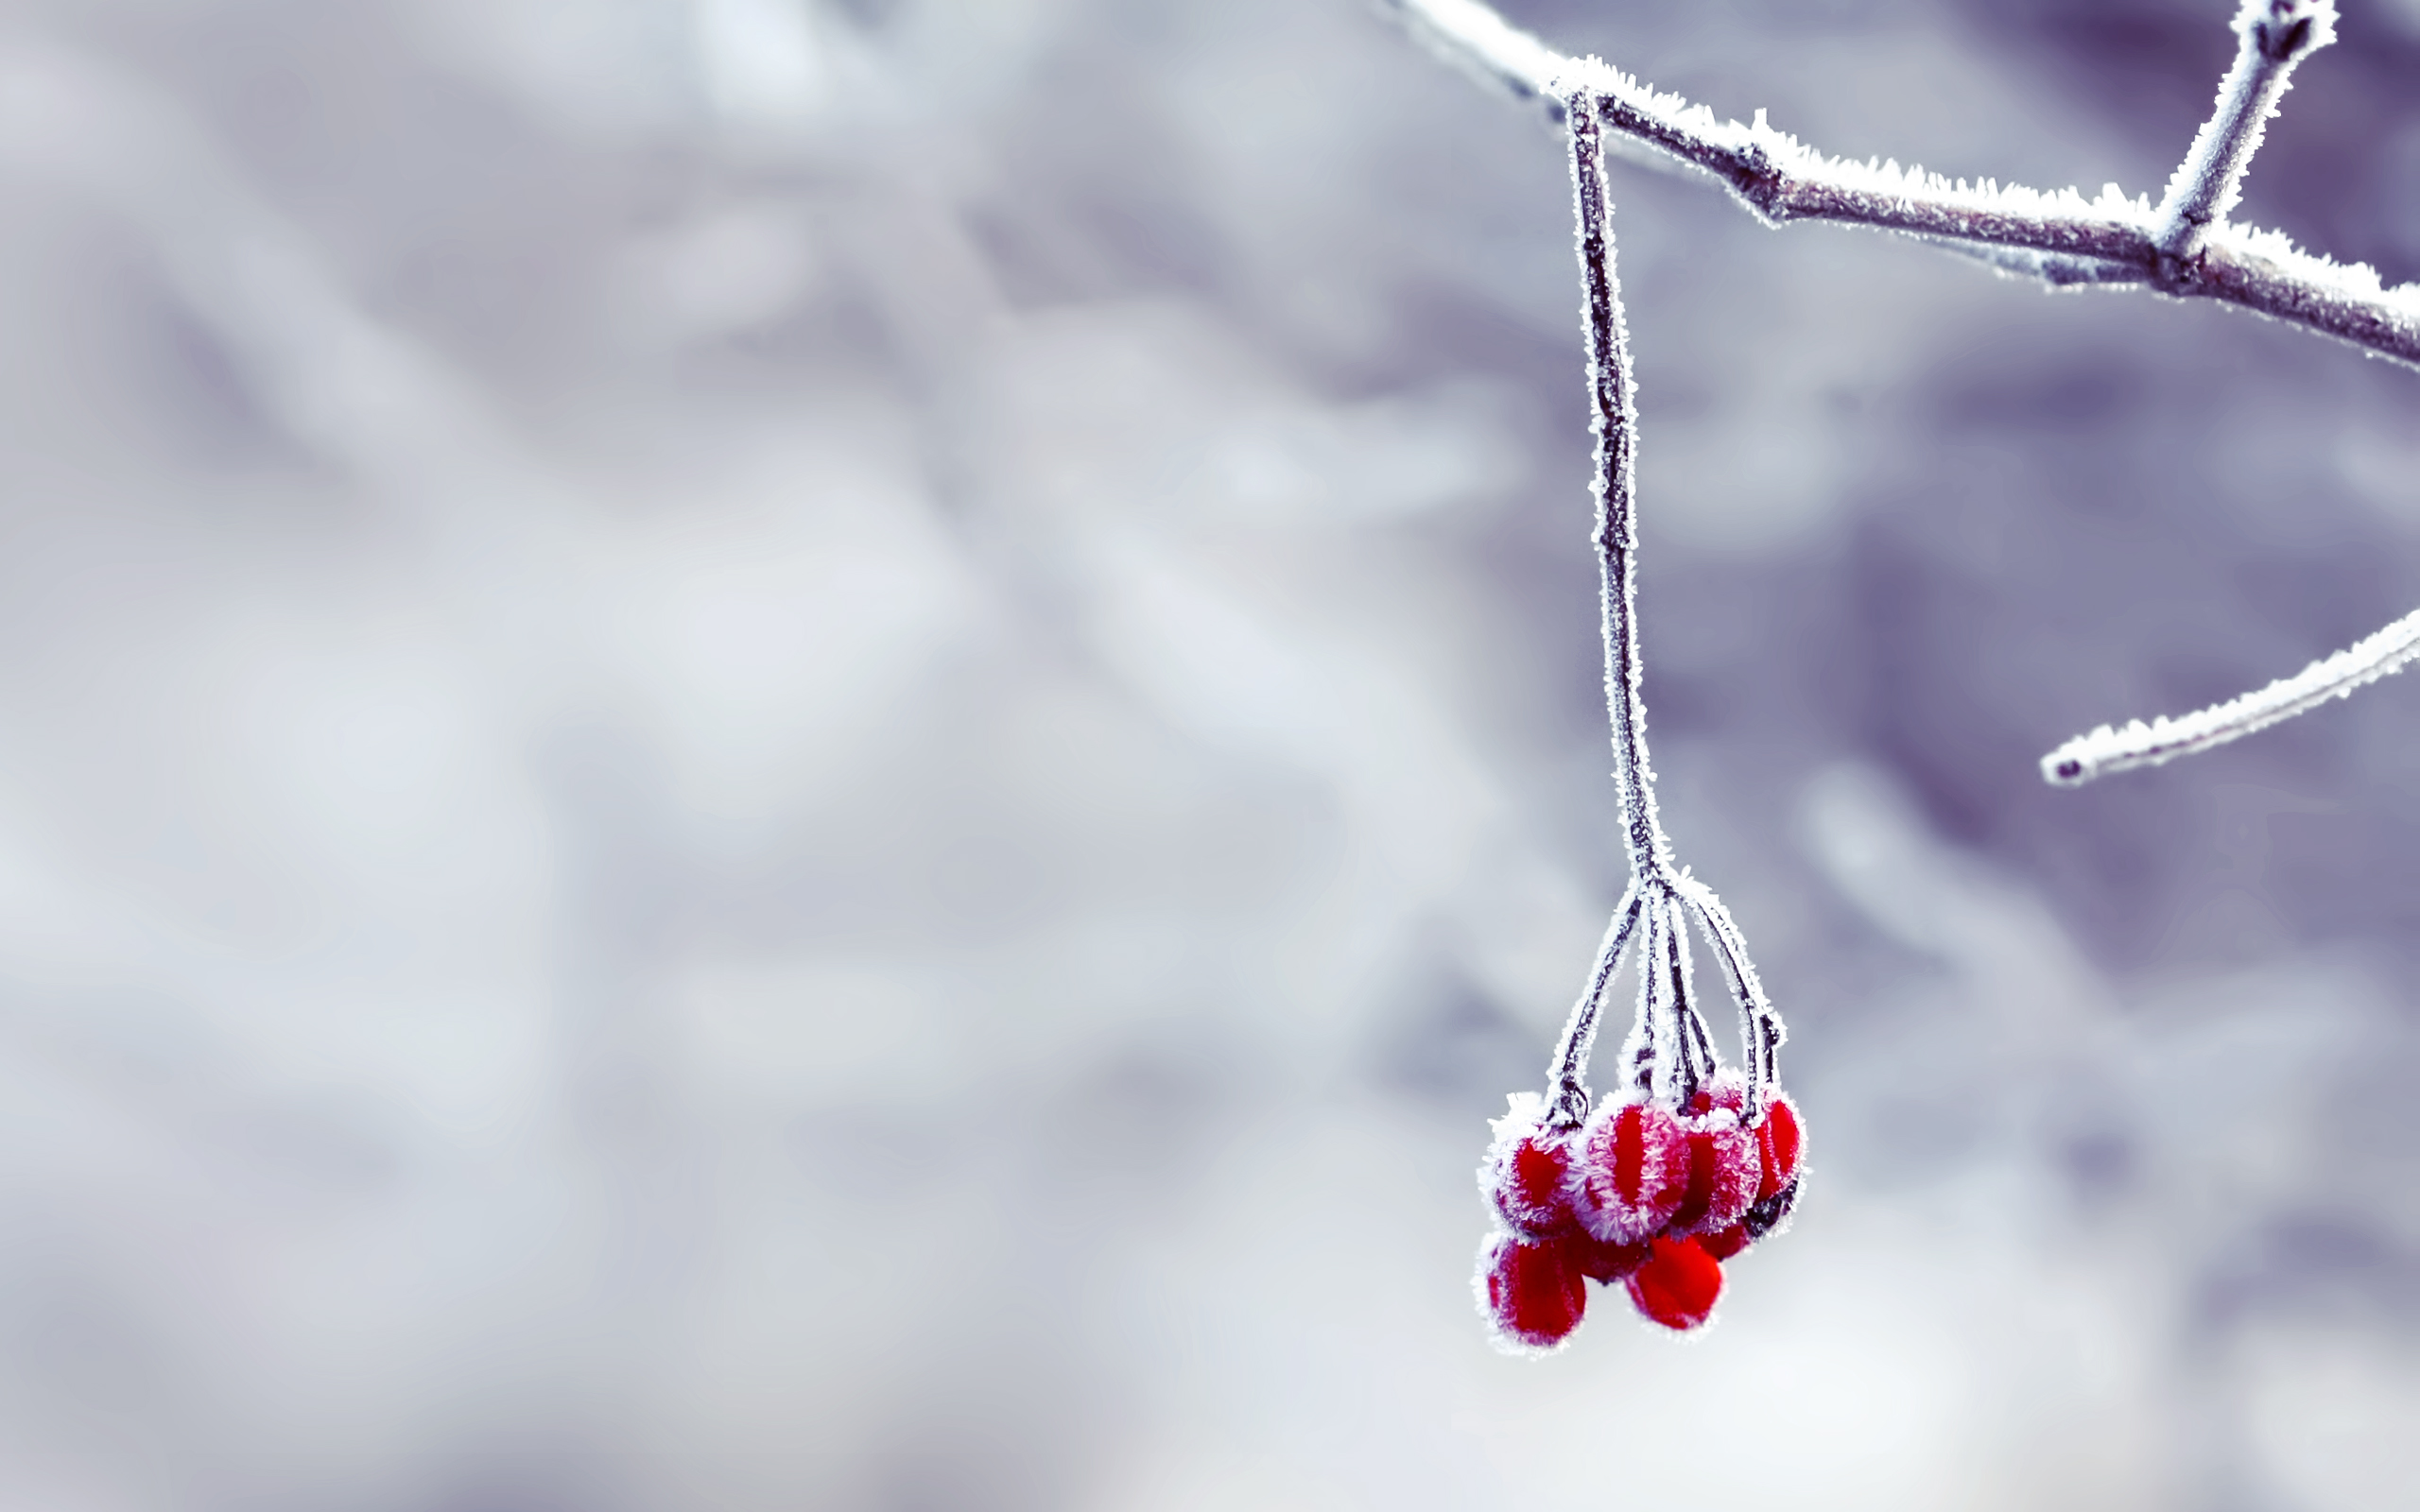 snow wallpaper berries HD Desktop Wallpapers 4k HD